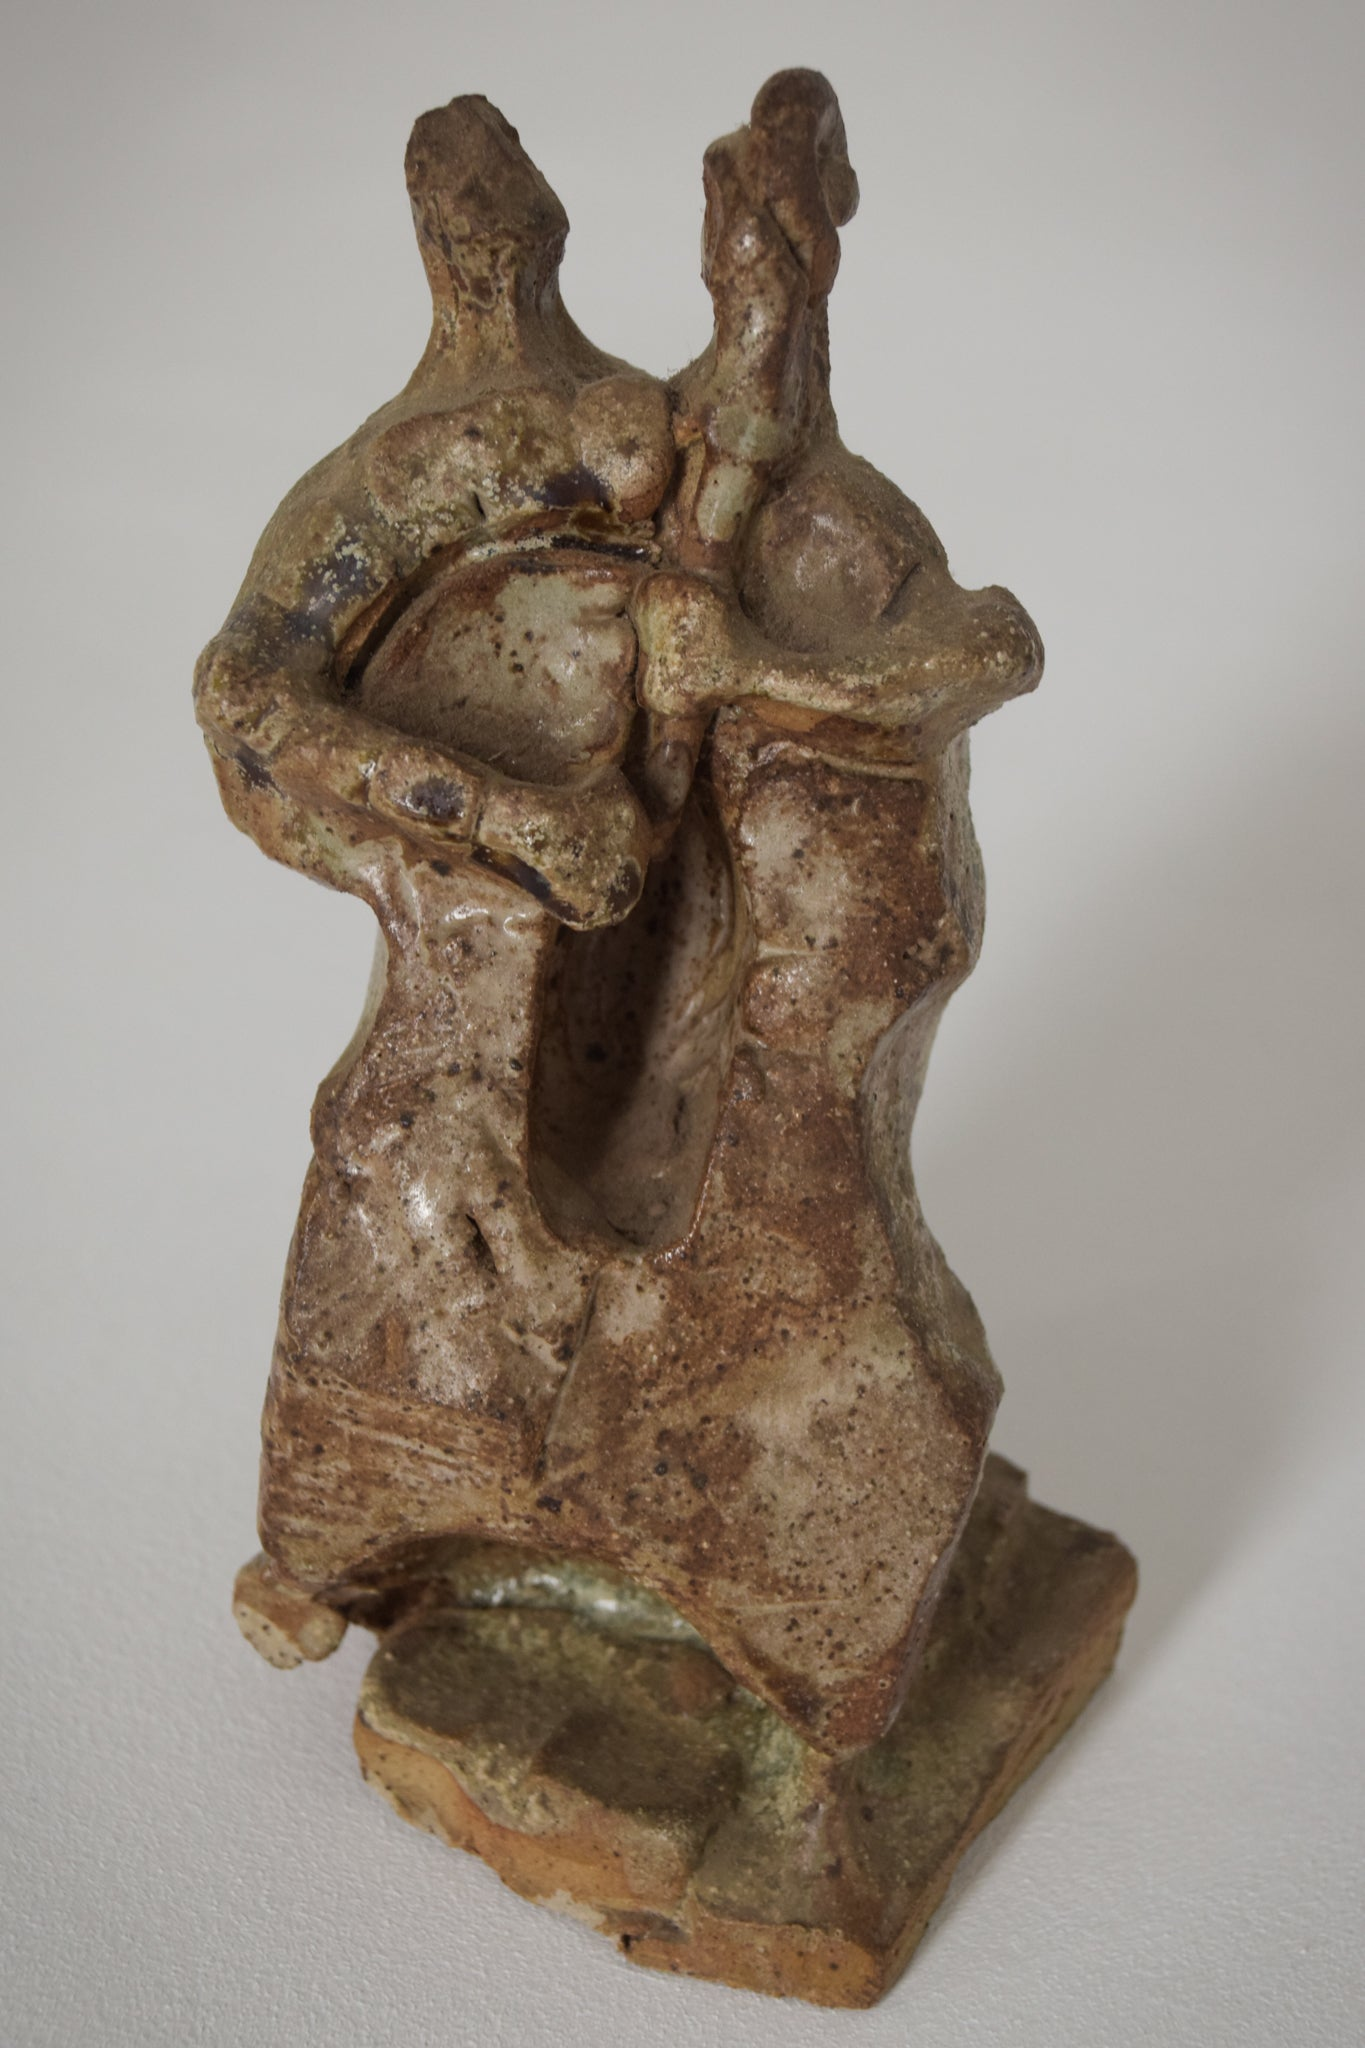 Sculpture of a Figure Playing an Instrument in an Abstract Style